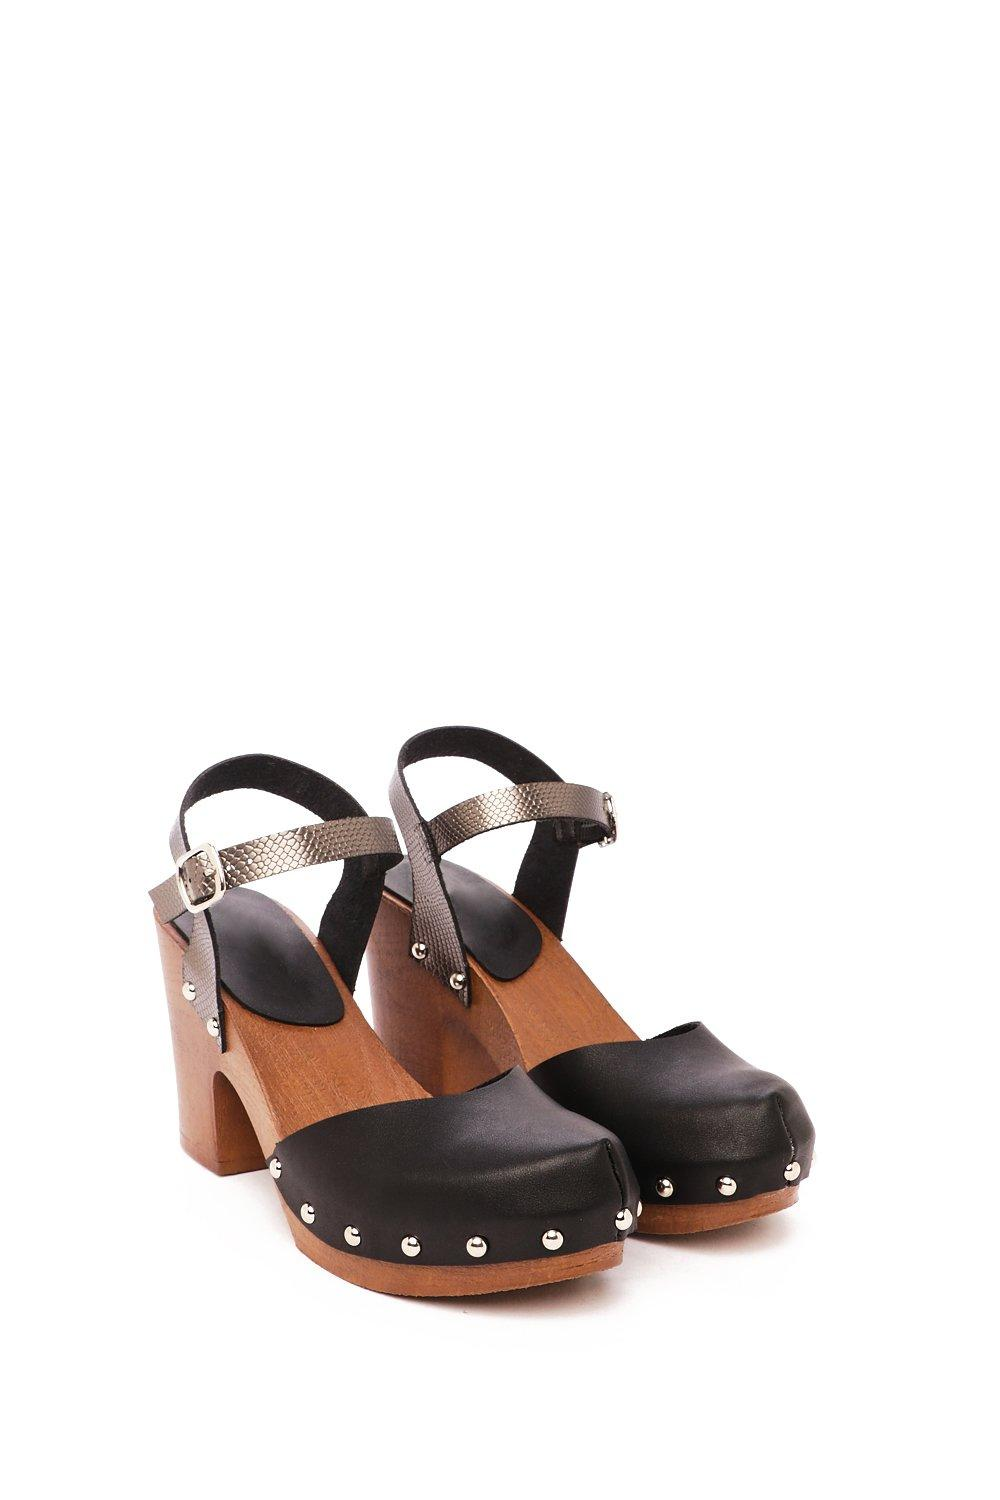 5ced80b684eed9 Wooden If You Tried Faux Leather Clog